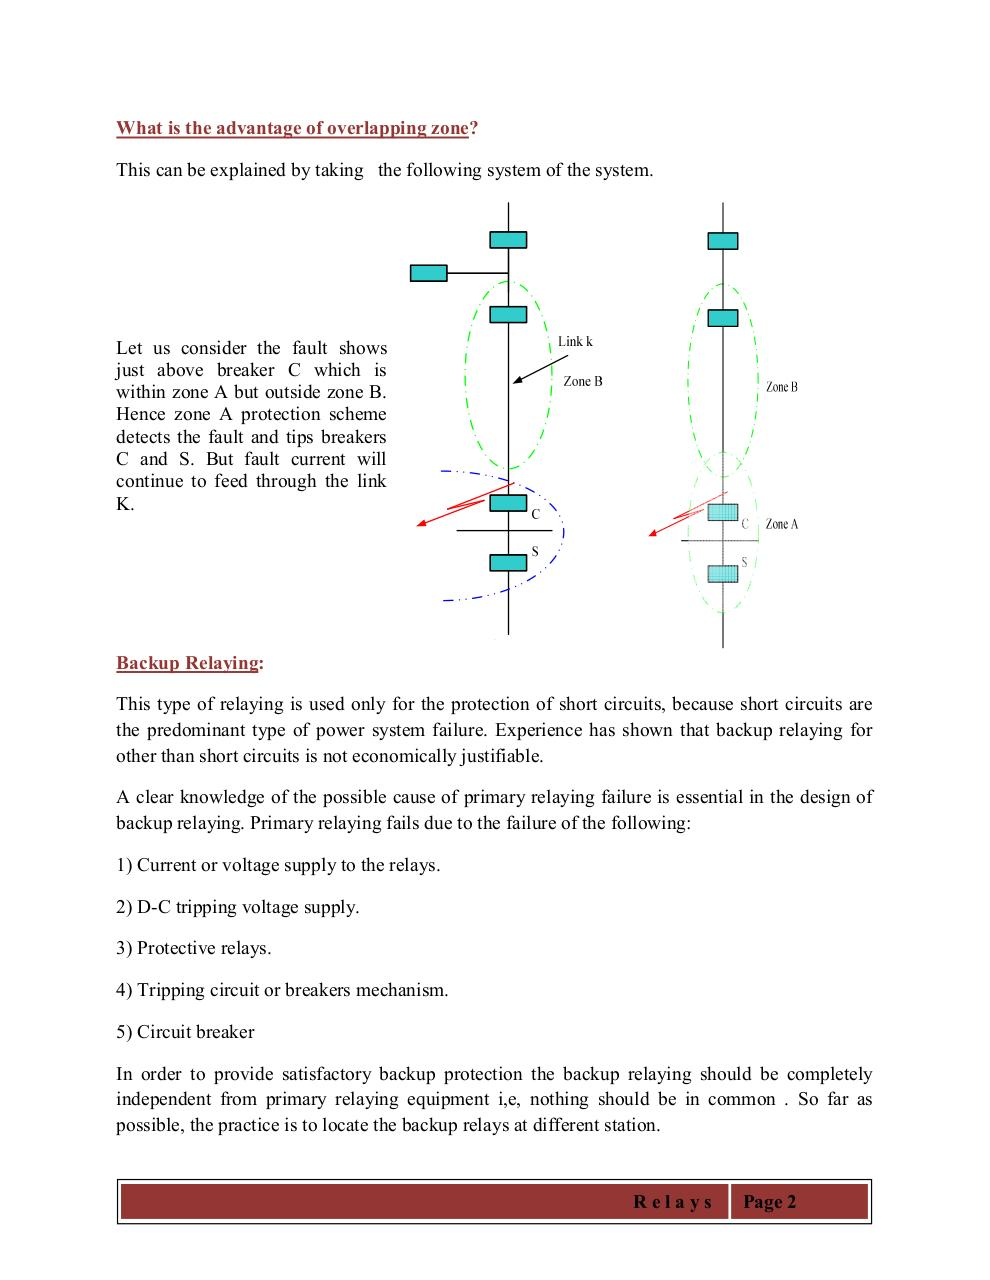 Relays by Ahmadullah - PDF Archive